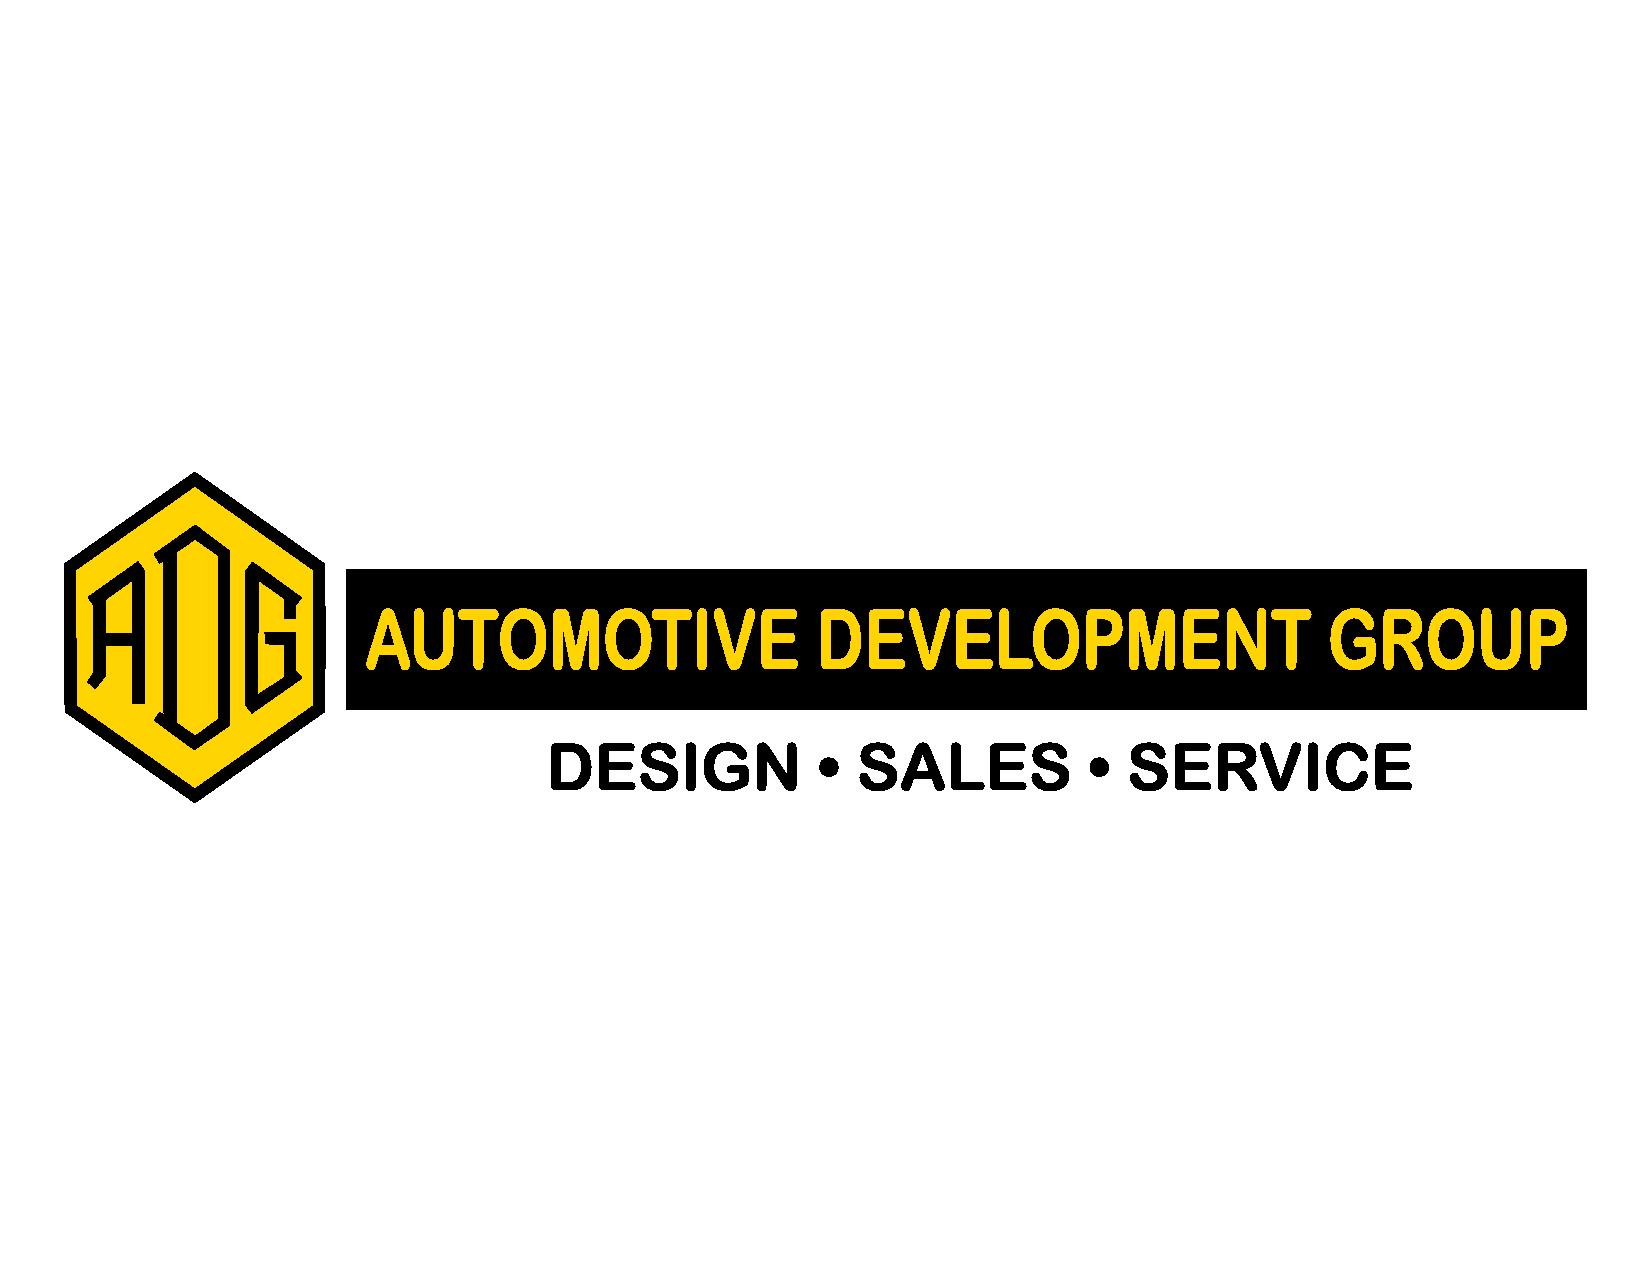 Automotive Development Group